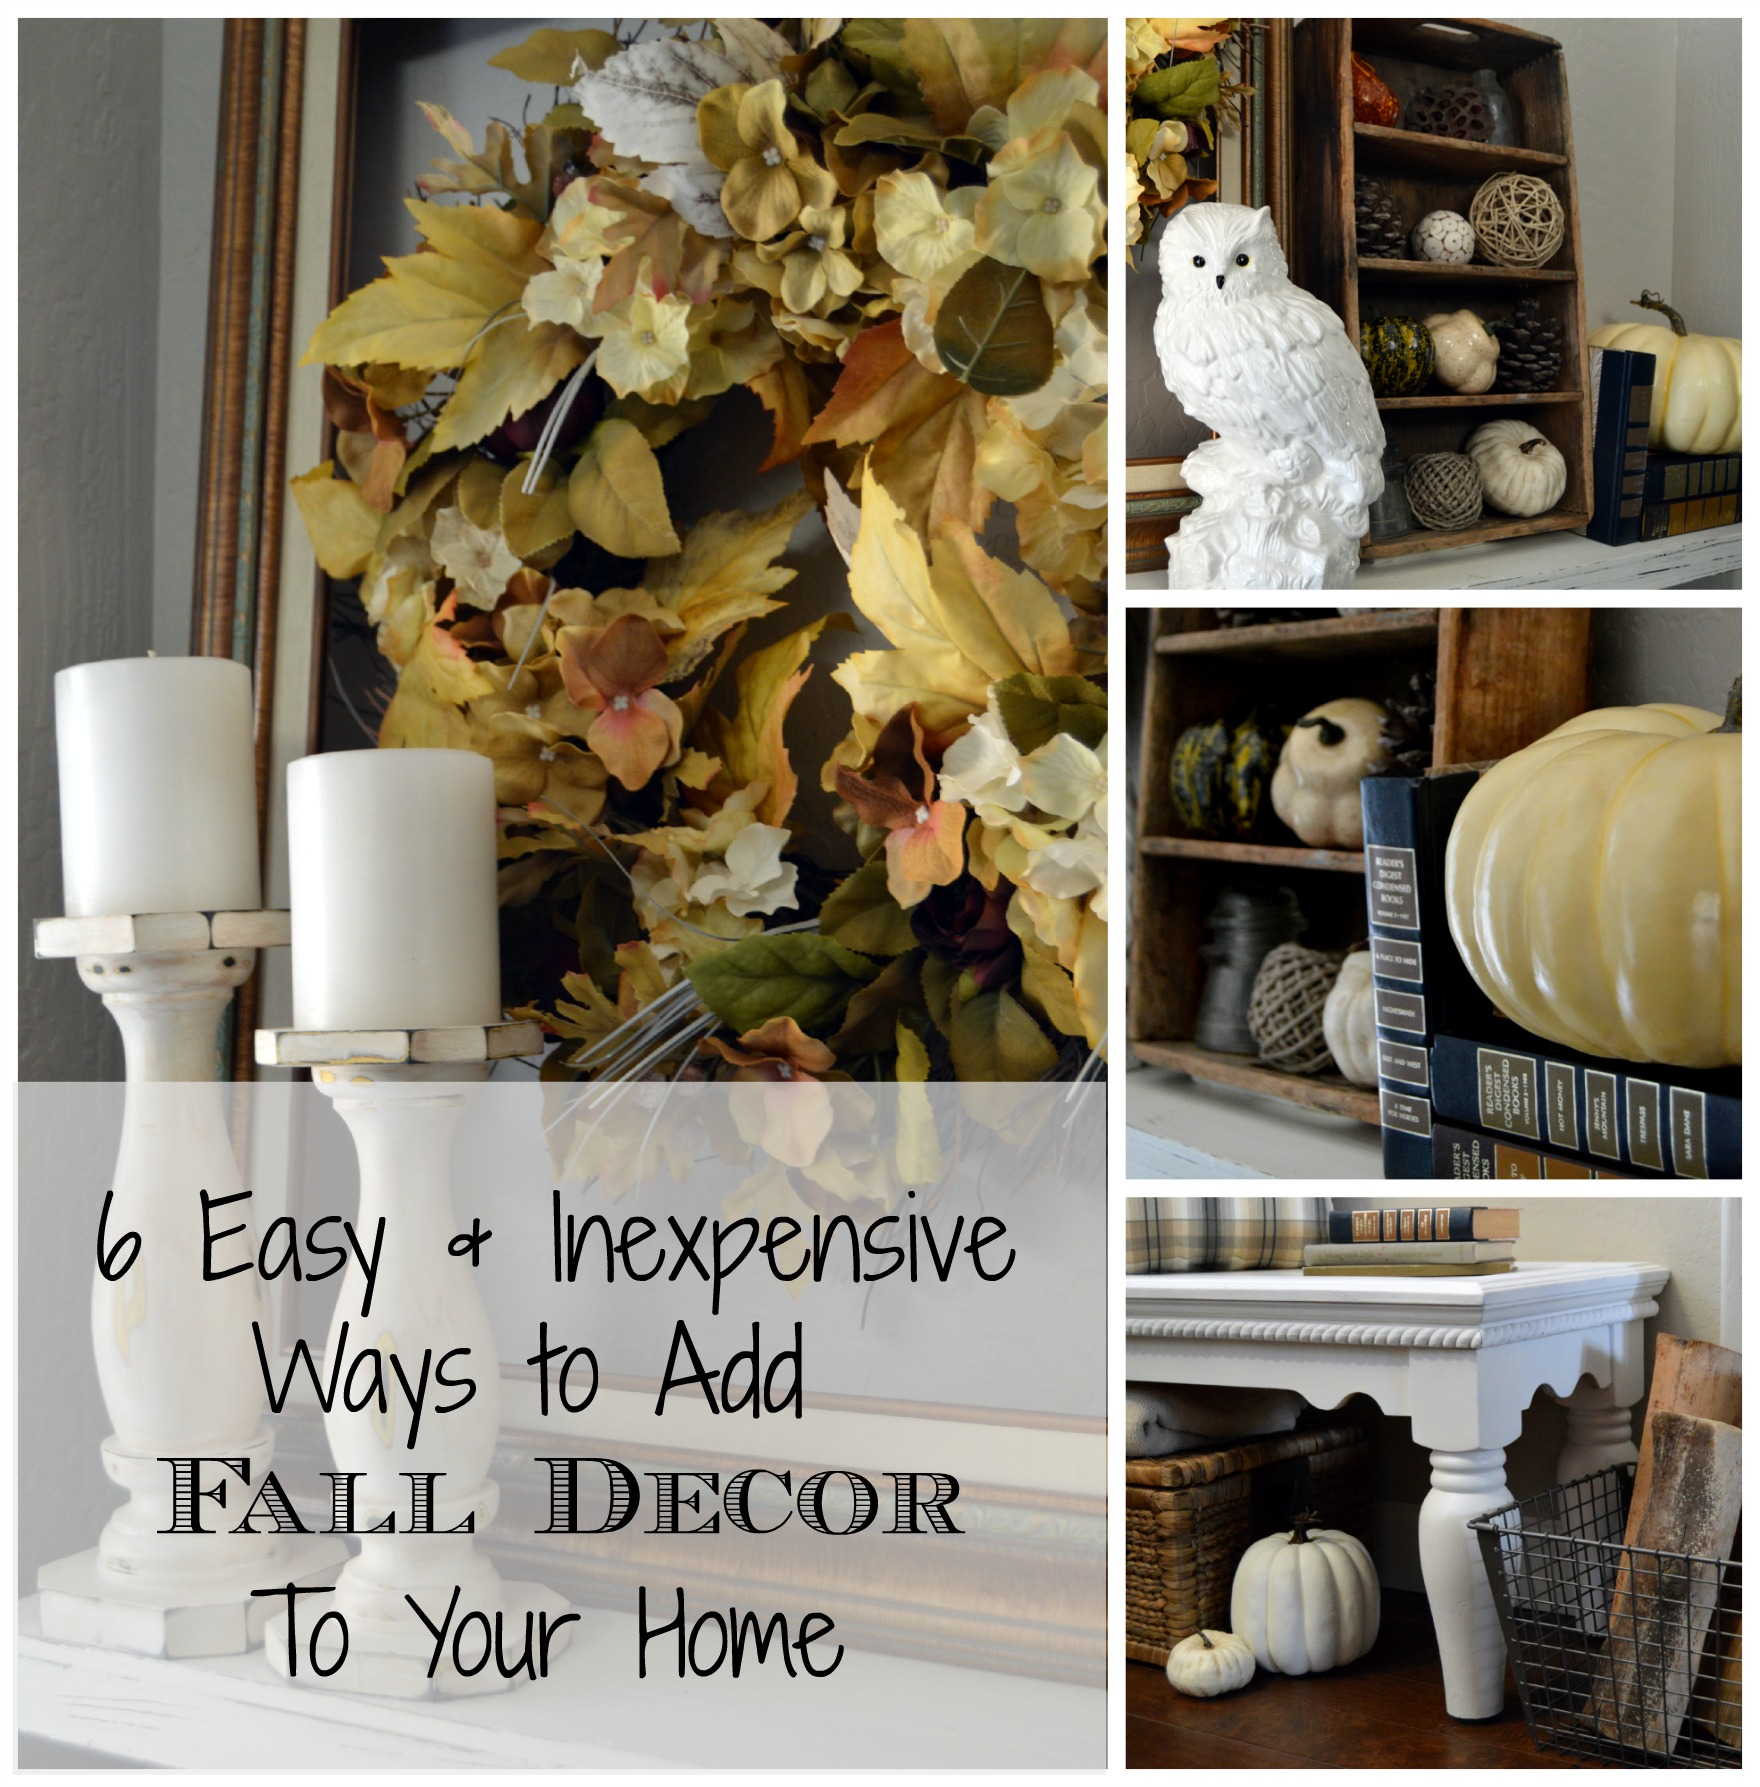 Cheap easy ways to decorate your home 28 images easy Cheap easy ways to decorate your home